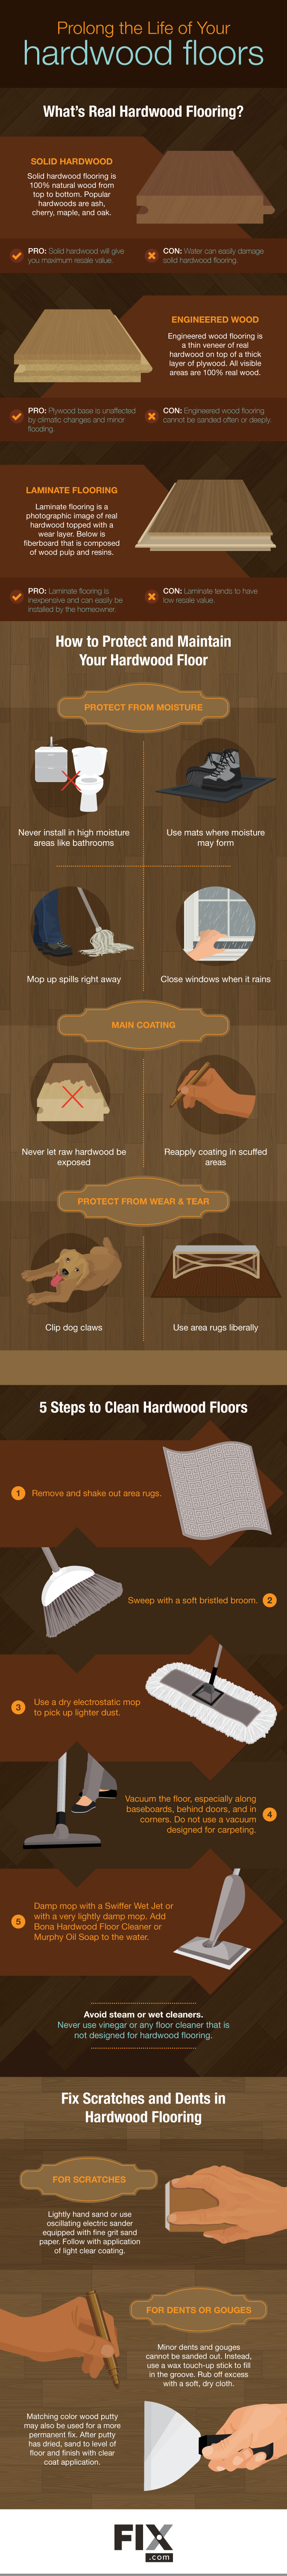 floor refill need top cleaner to bath bedding cleaners you that in reviews hardwood blog best have bona wood